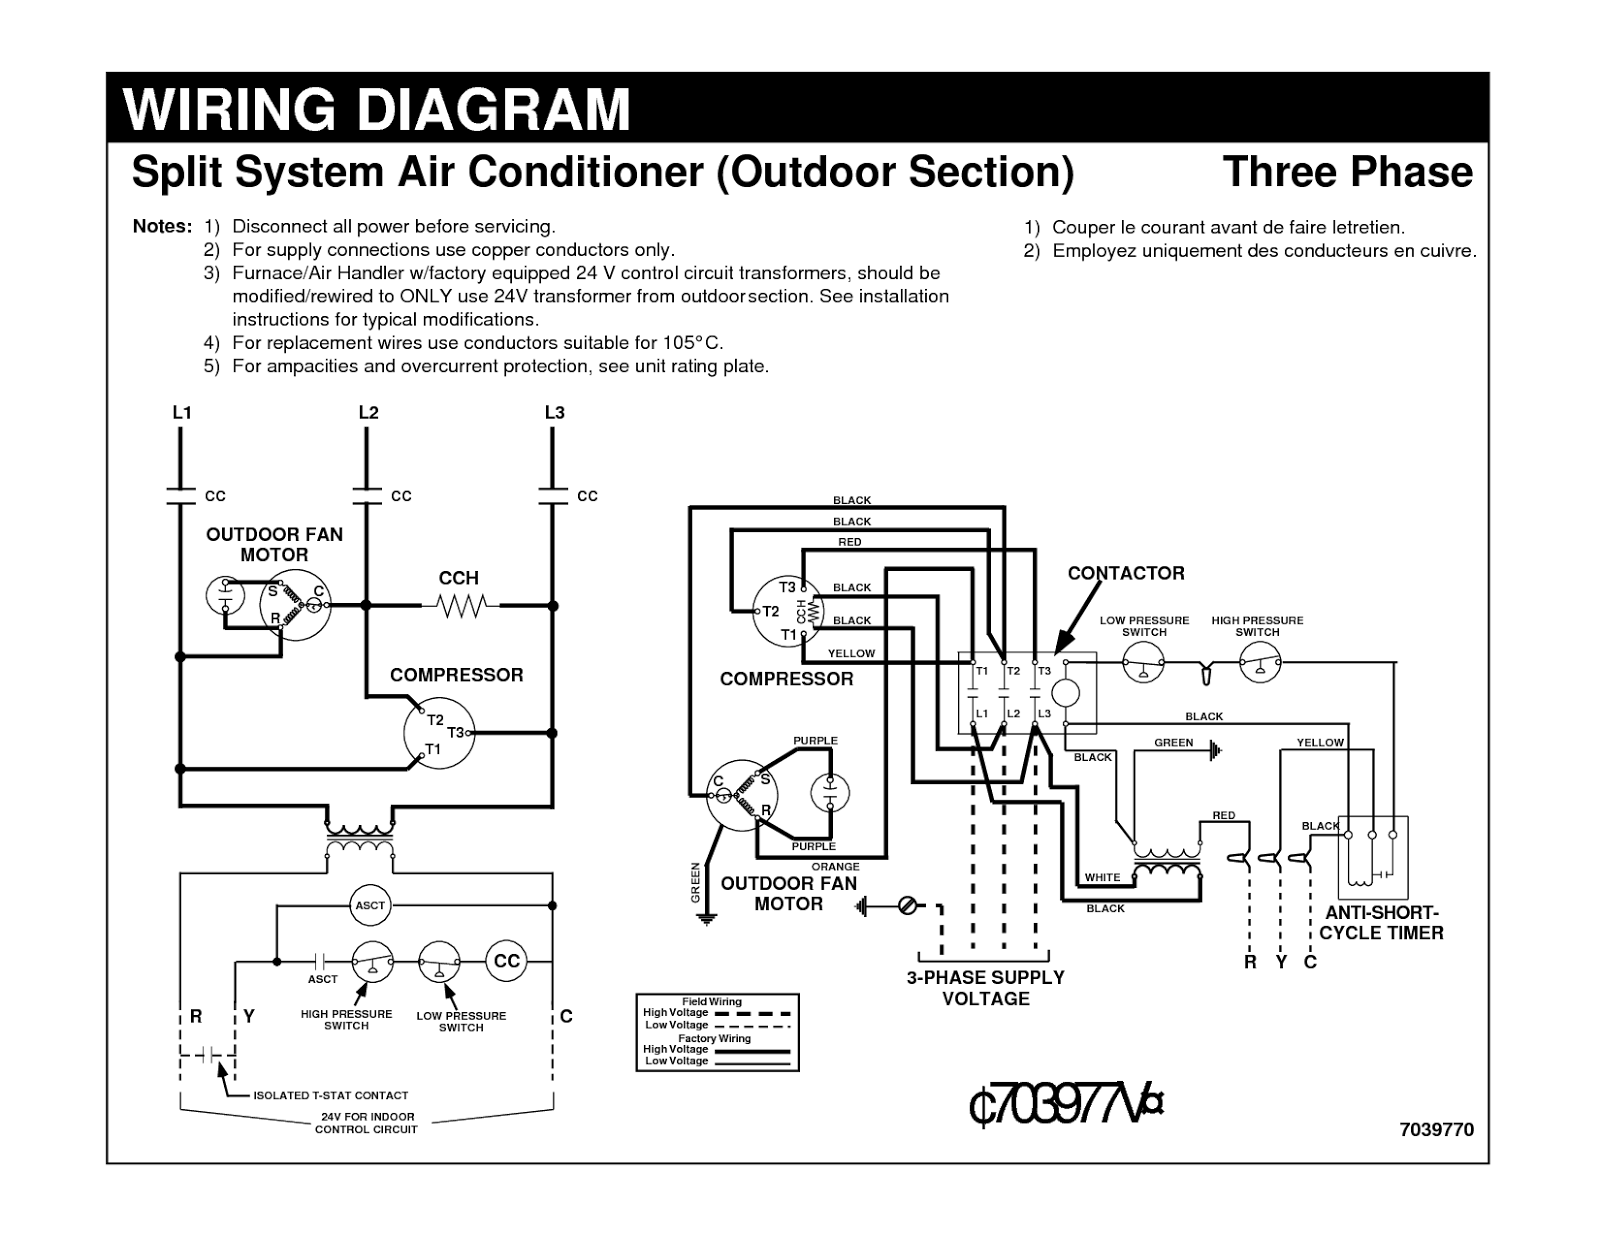 wiring+diagram+in+the+user+manual electrical wiring diagrams for air conditioning systems part one thermostat heating and air wiring diagram at gsmx.co